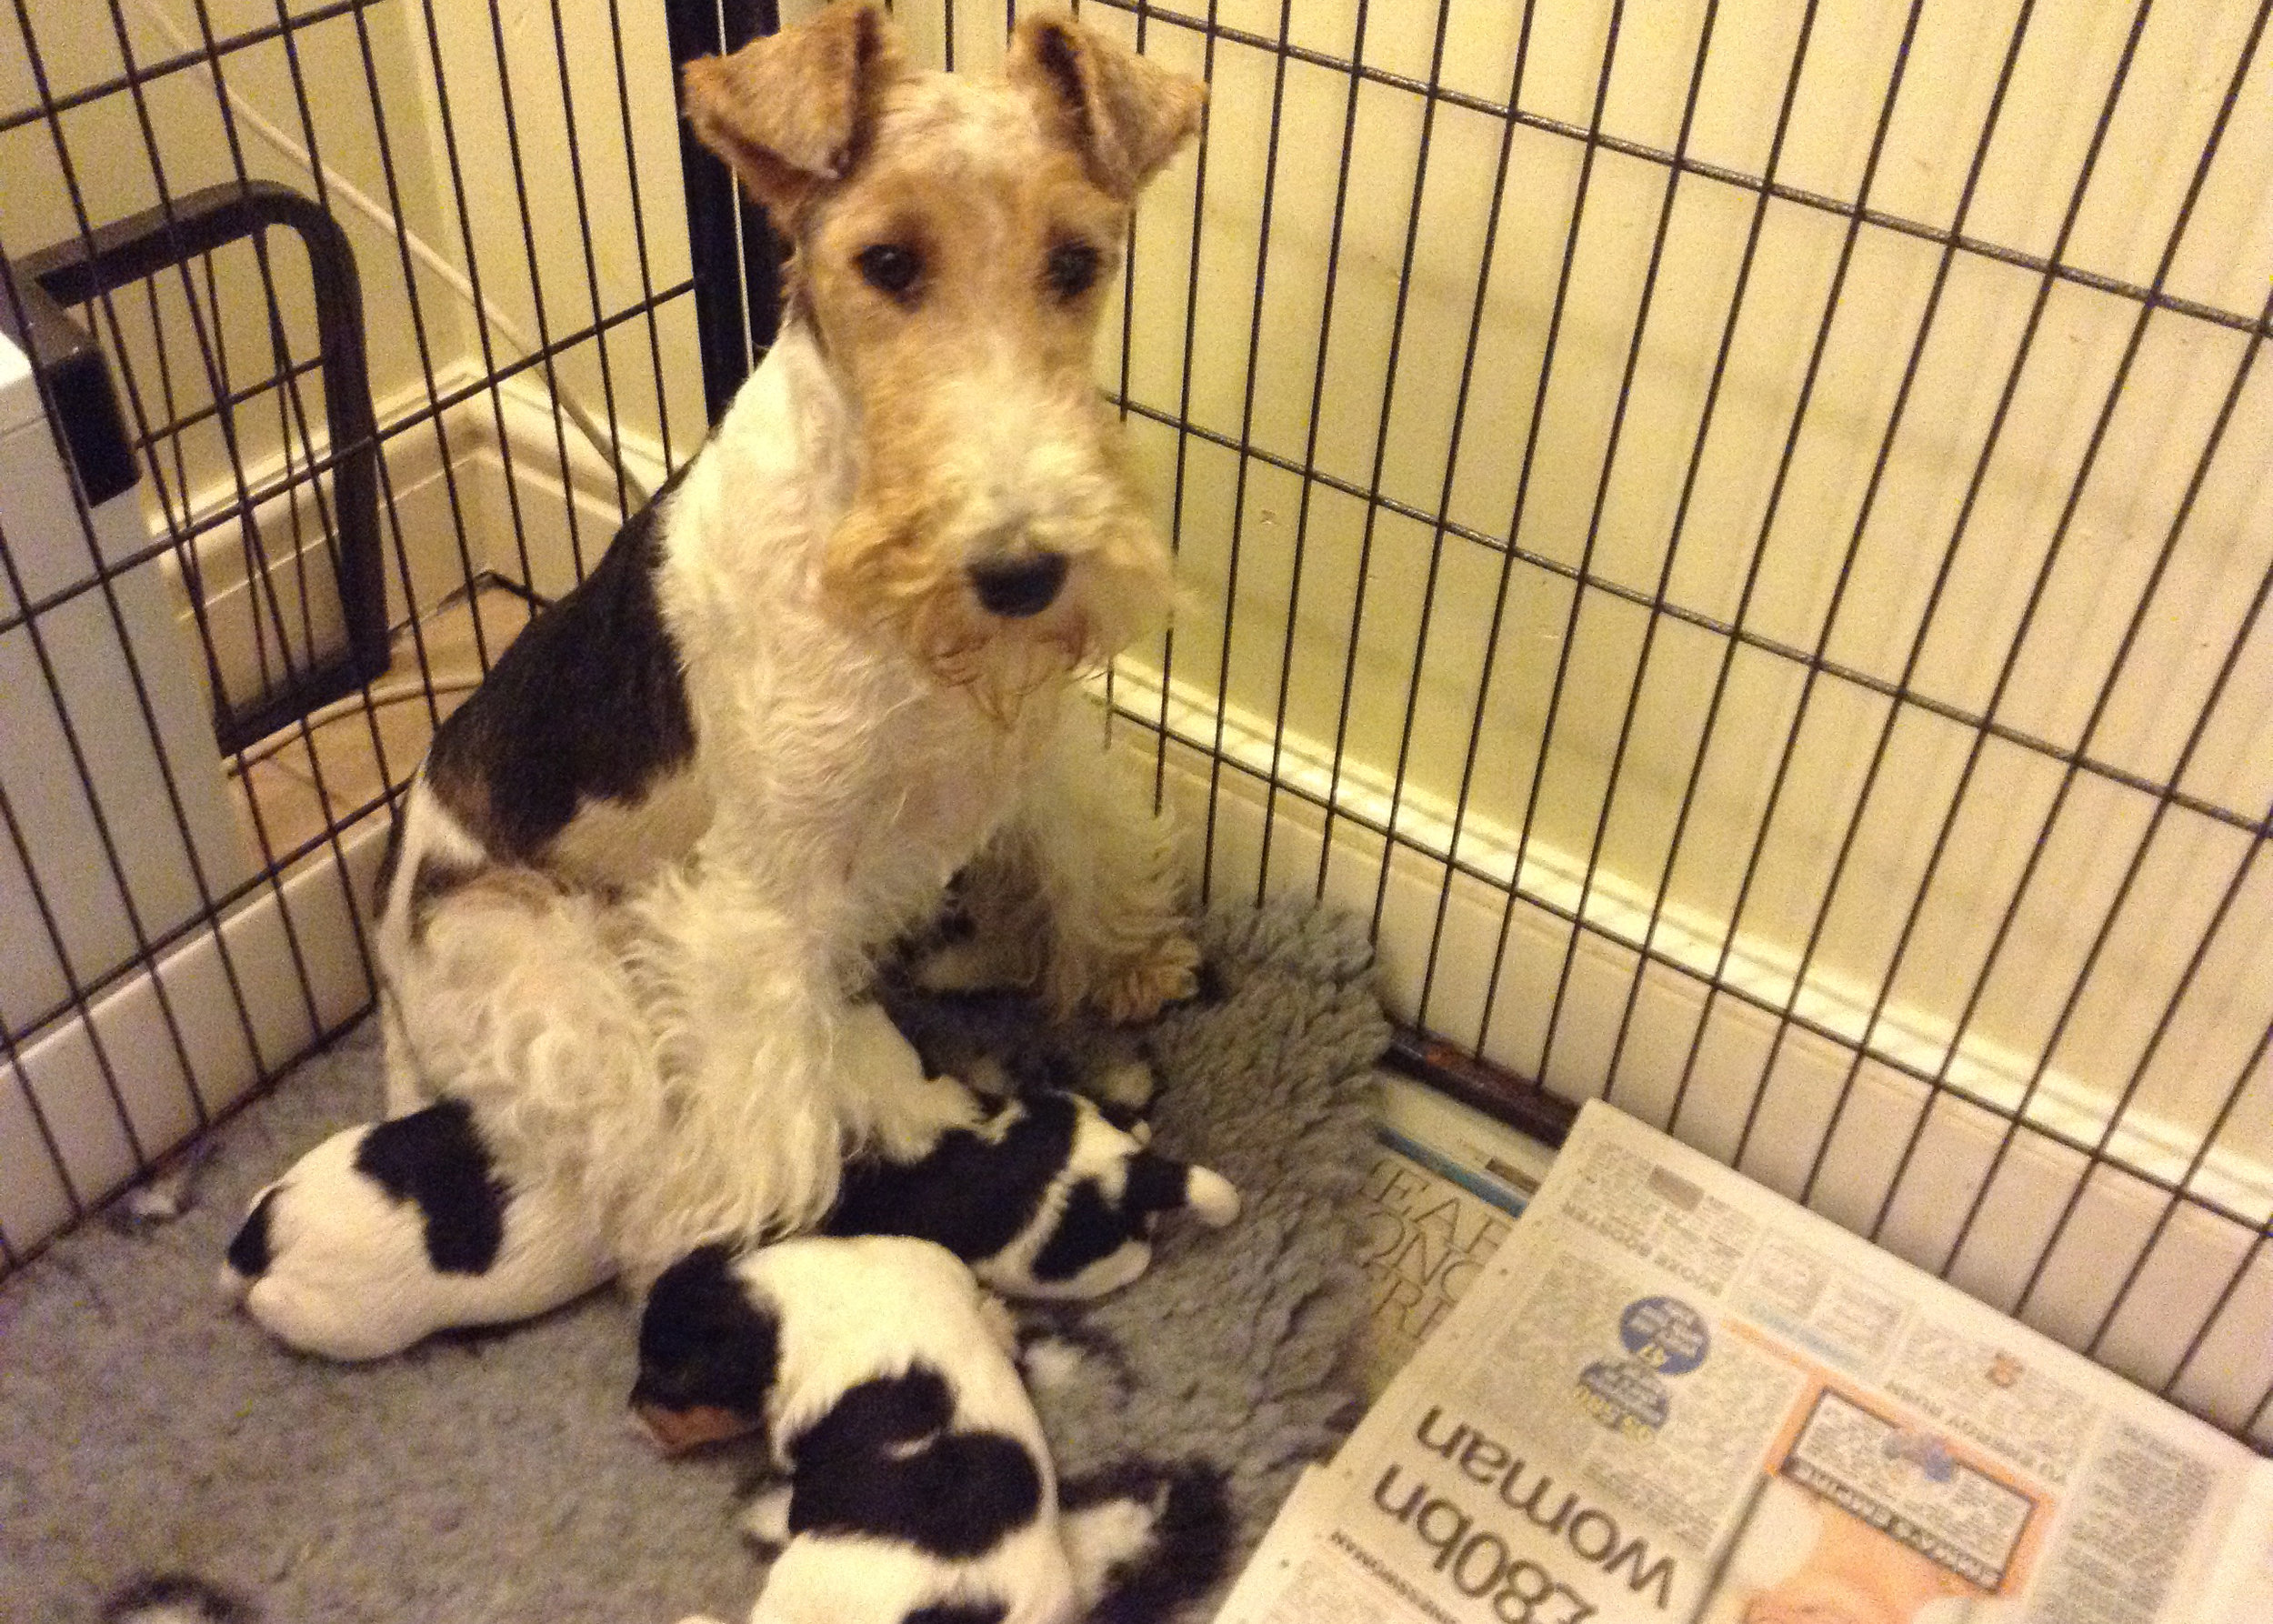 Proud mum Angel with her puppies, sired by Irvonhill Cider Cup.